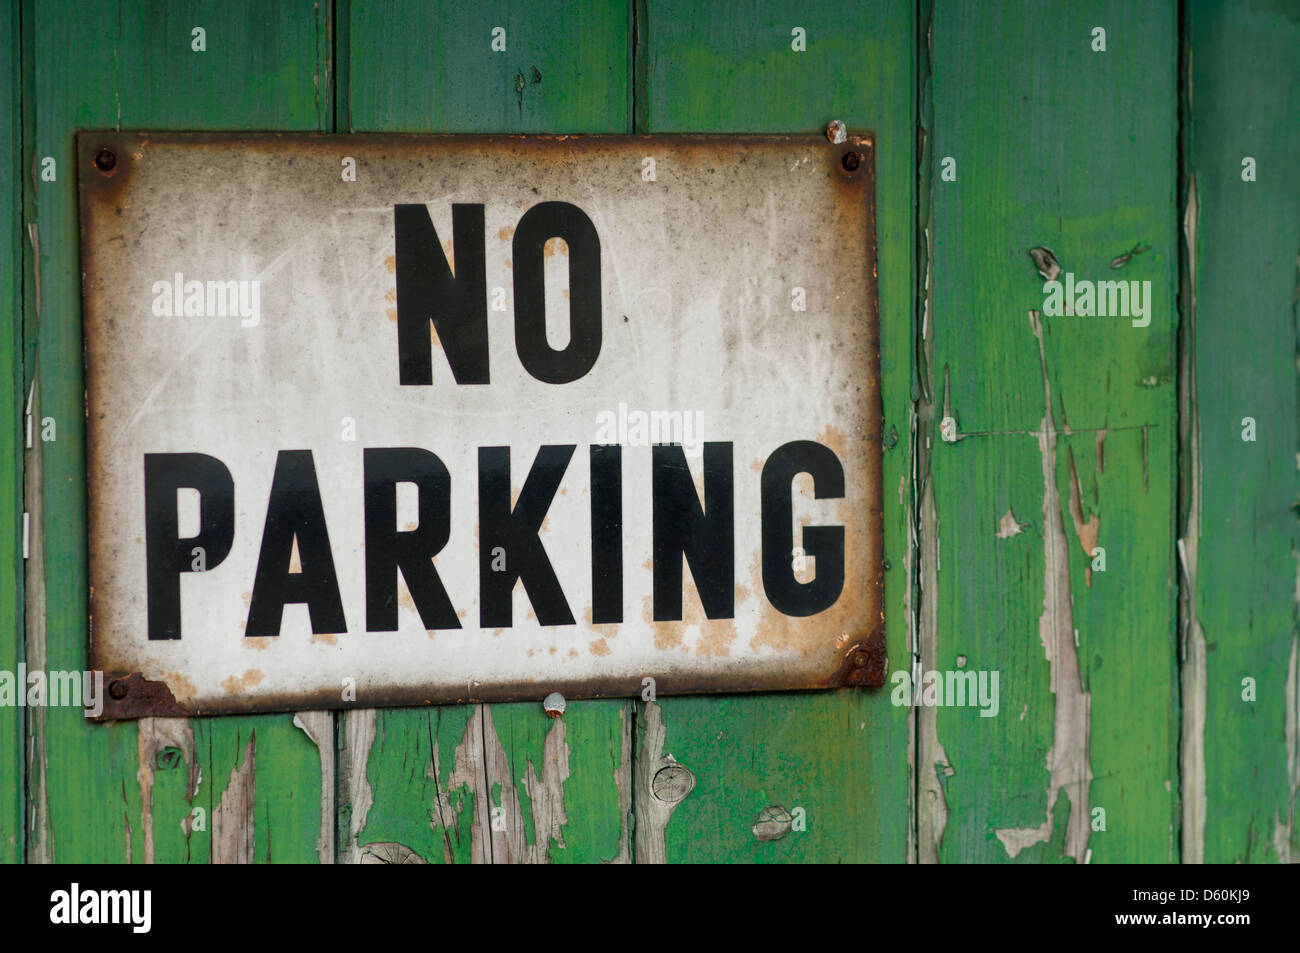 Close Up Of A No Parking Sign On A Green Wooden Garage Door Stock